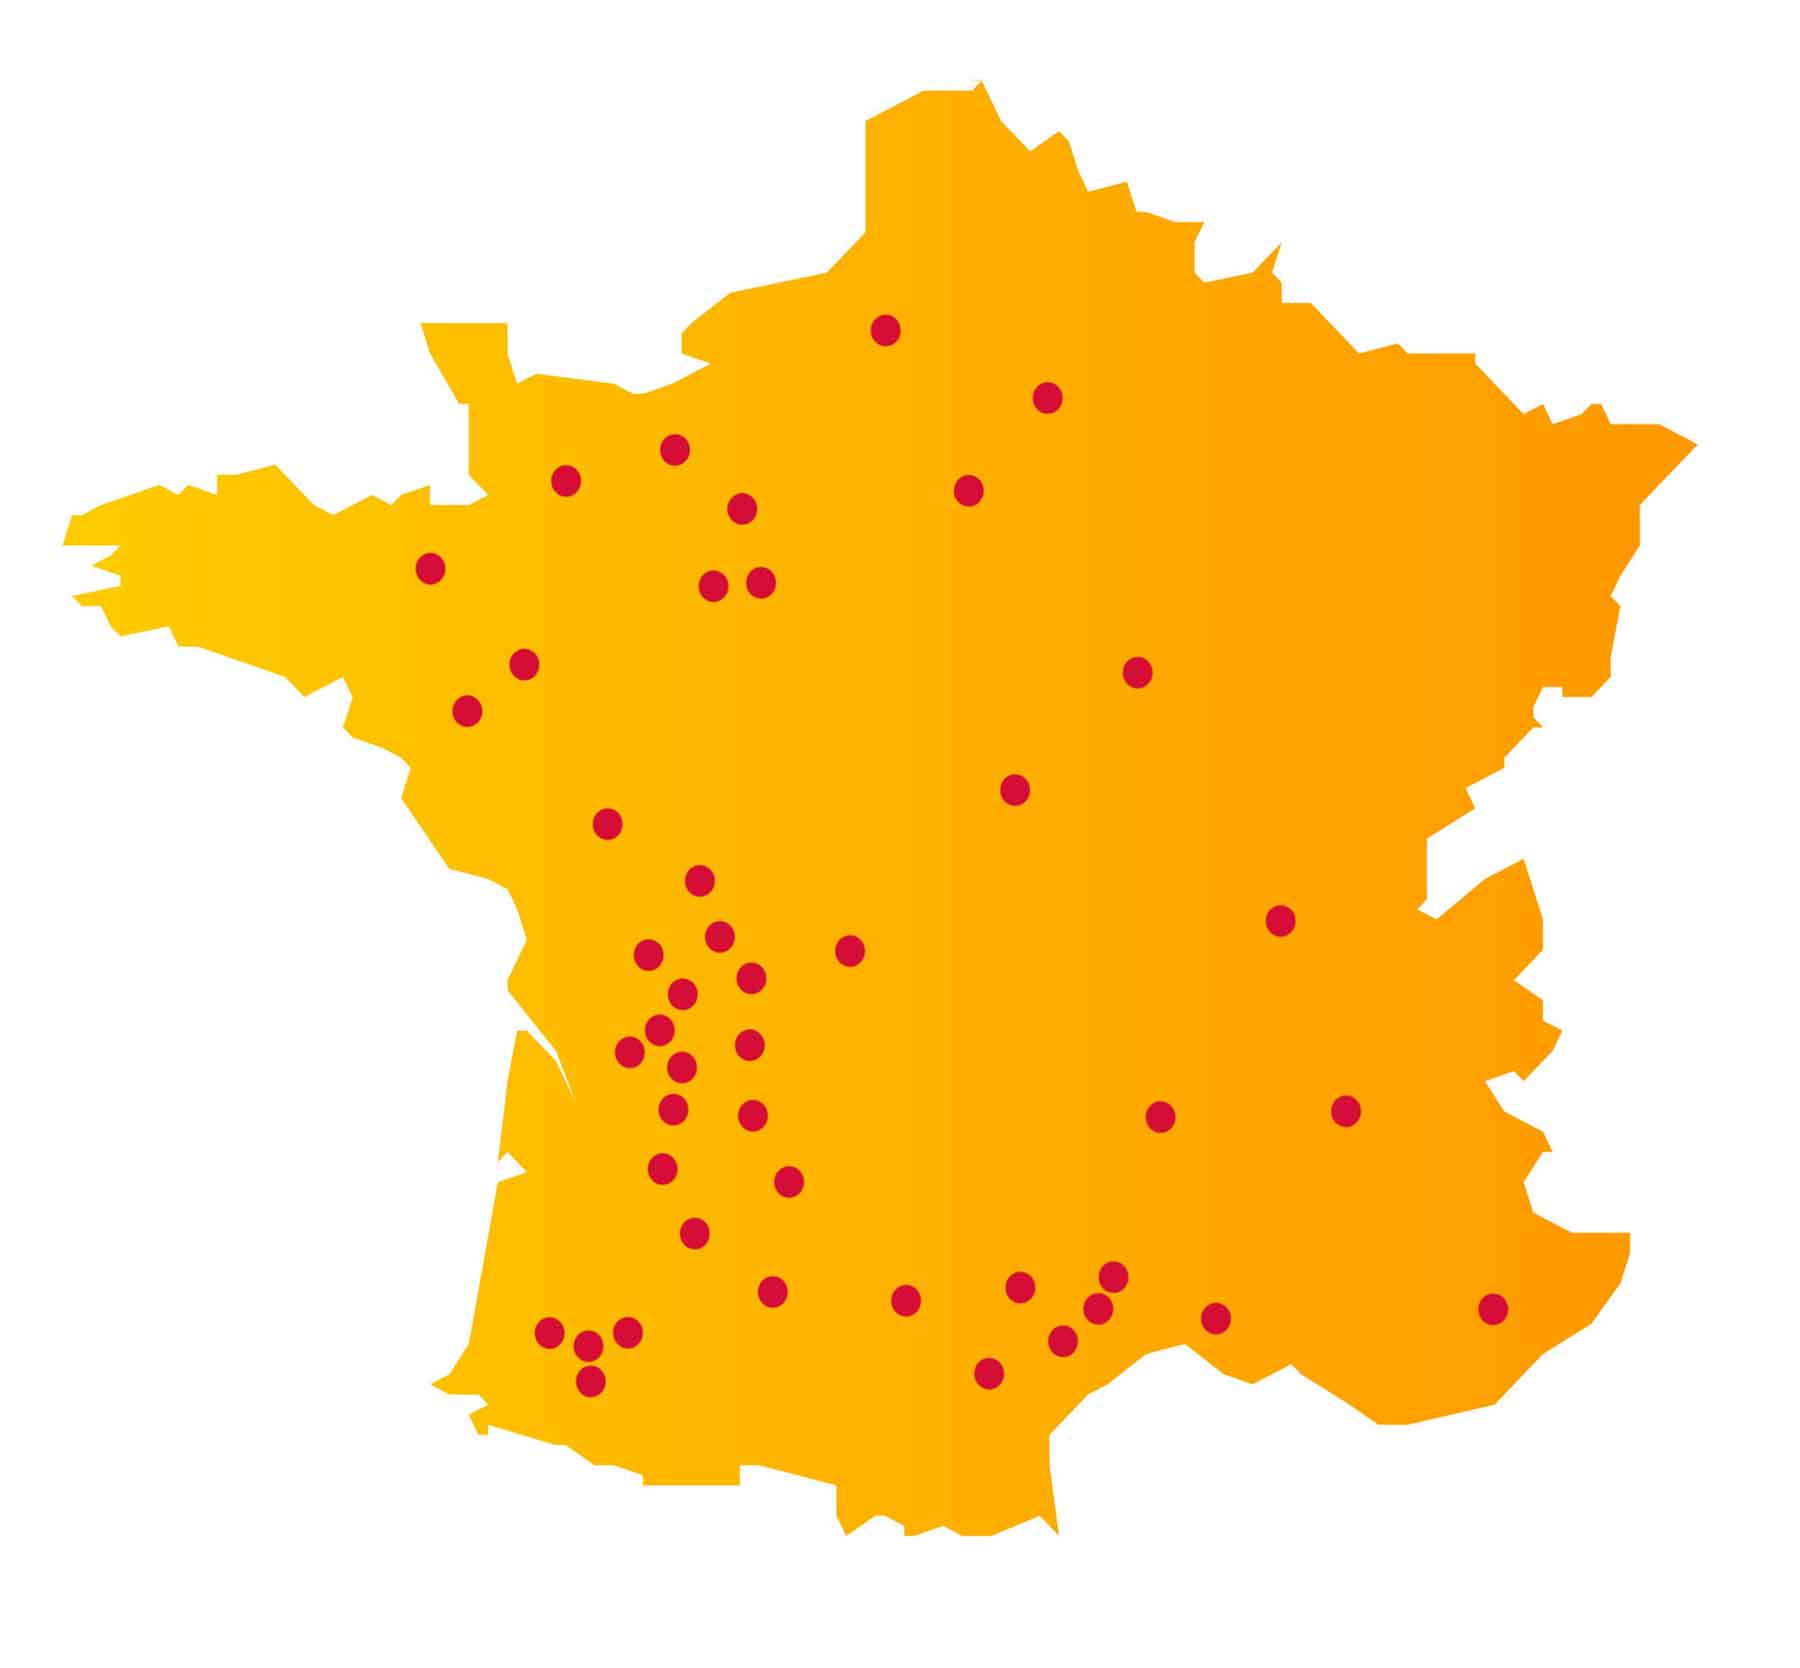 Carte des implantations de centrales DEFISOLAR